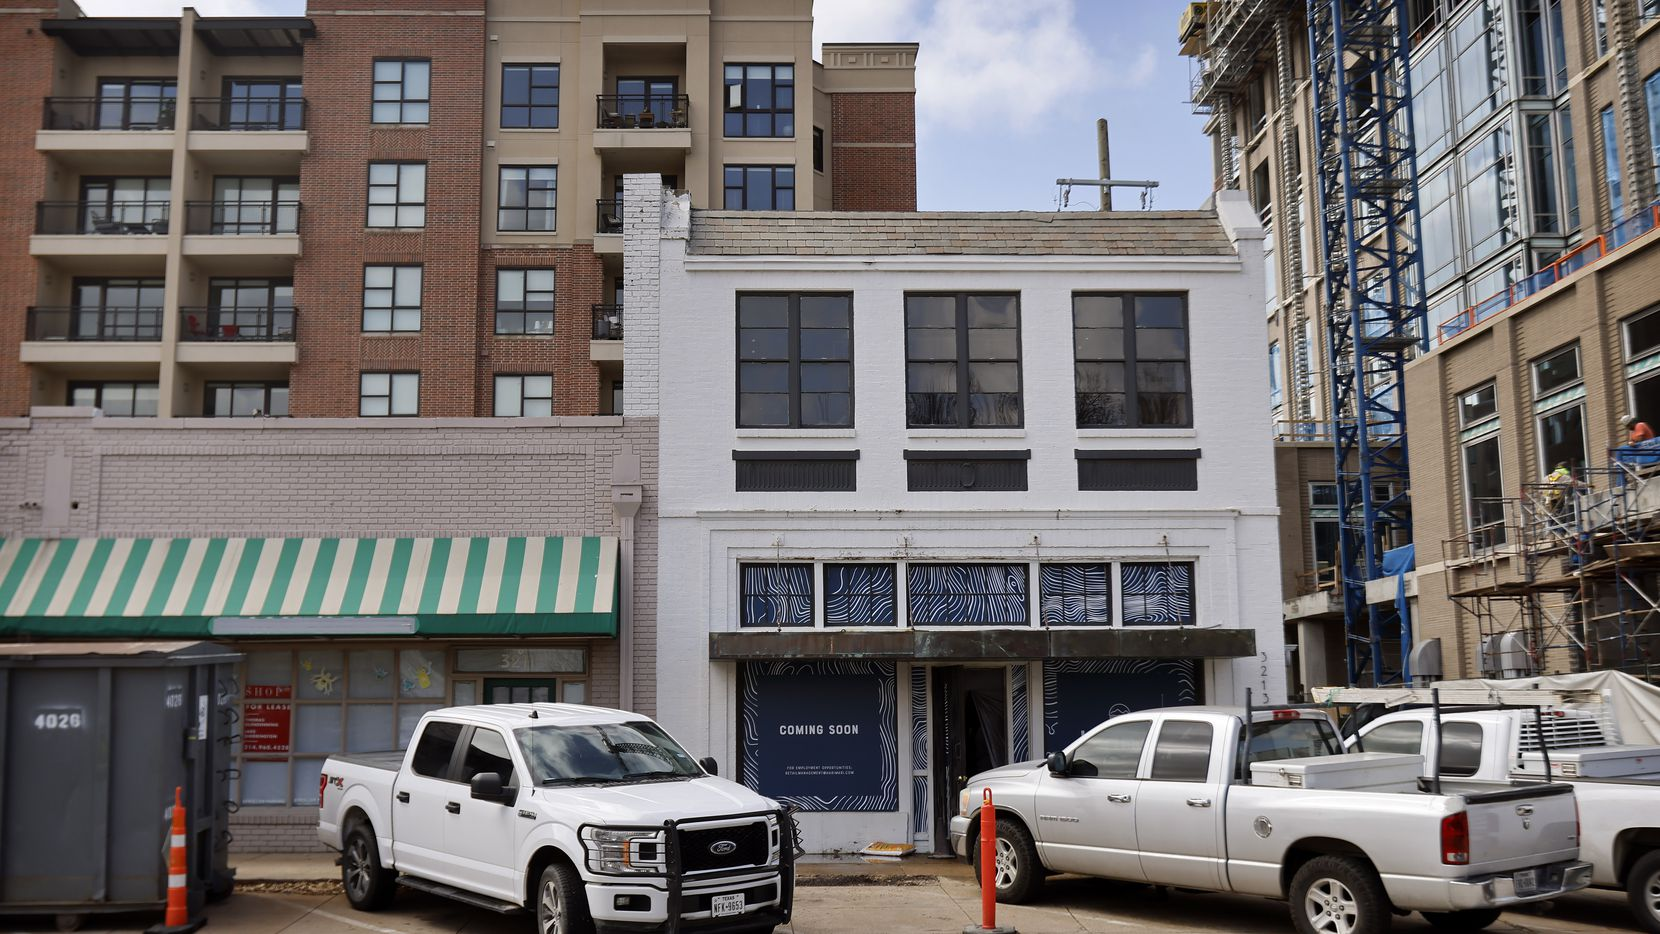 An exterior view of the new two-story building that's being renovated to house Hari Mari's flagship store at 3213 Knox Street in Dallas,